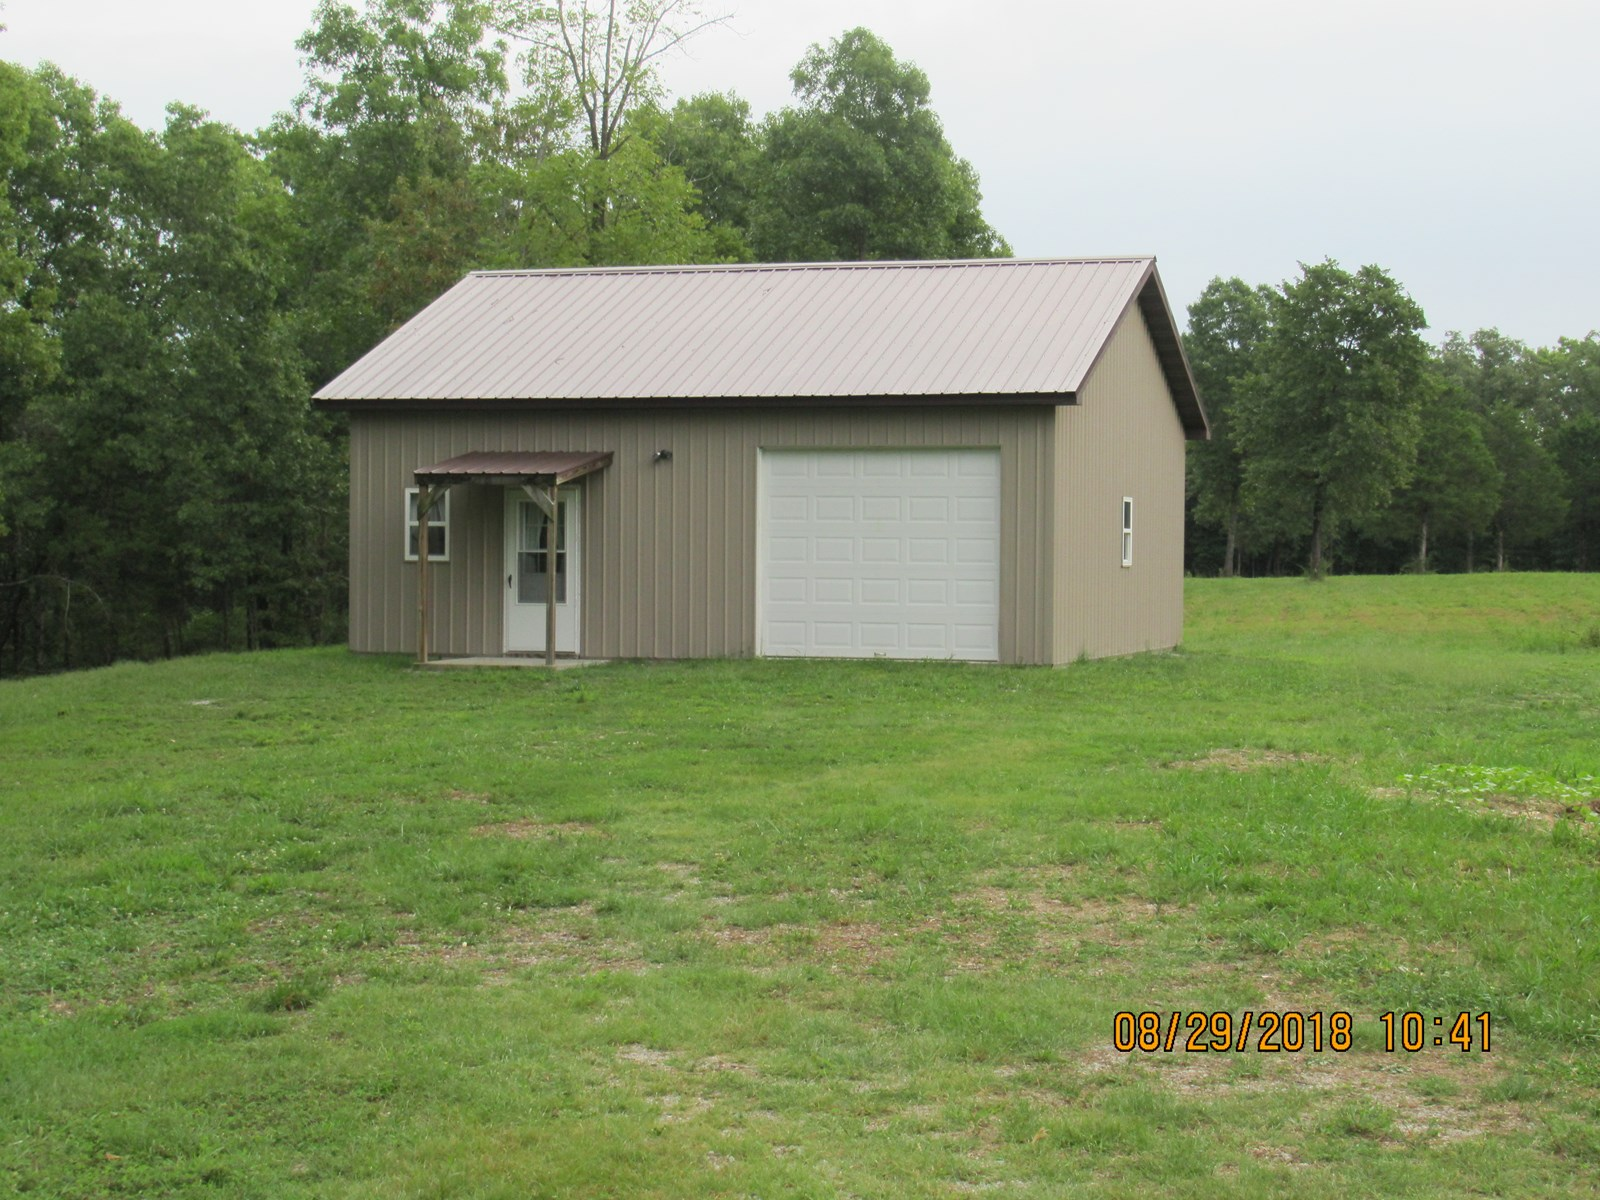 Ozark county Land for sale, Gainesville Mo